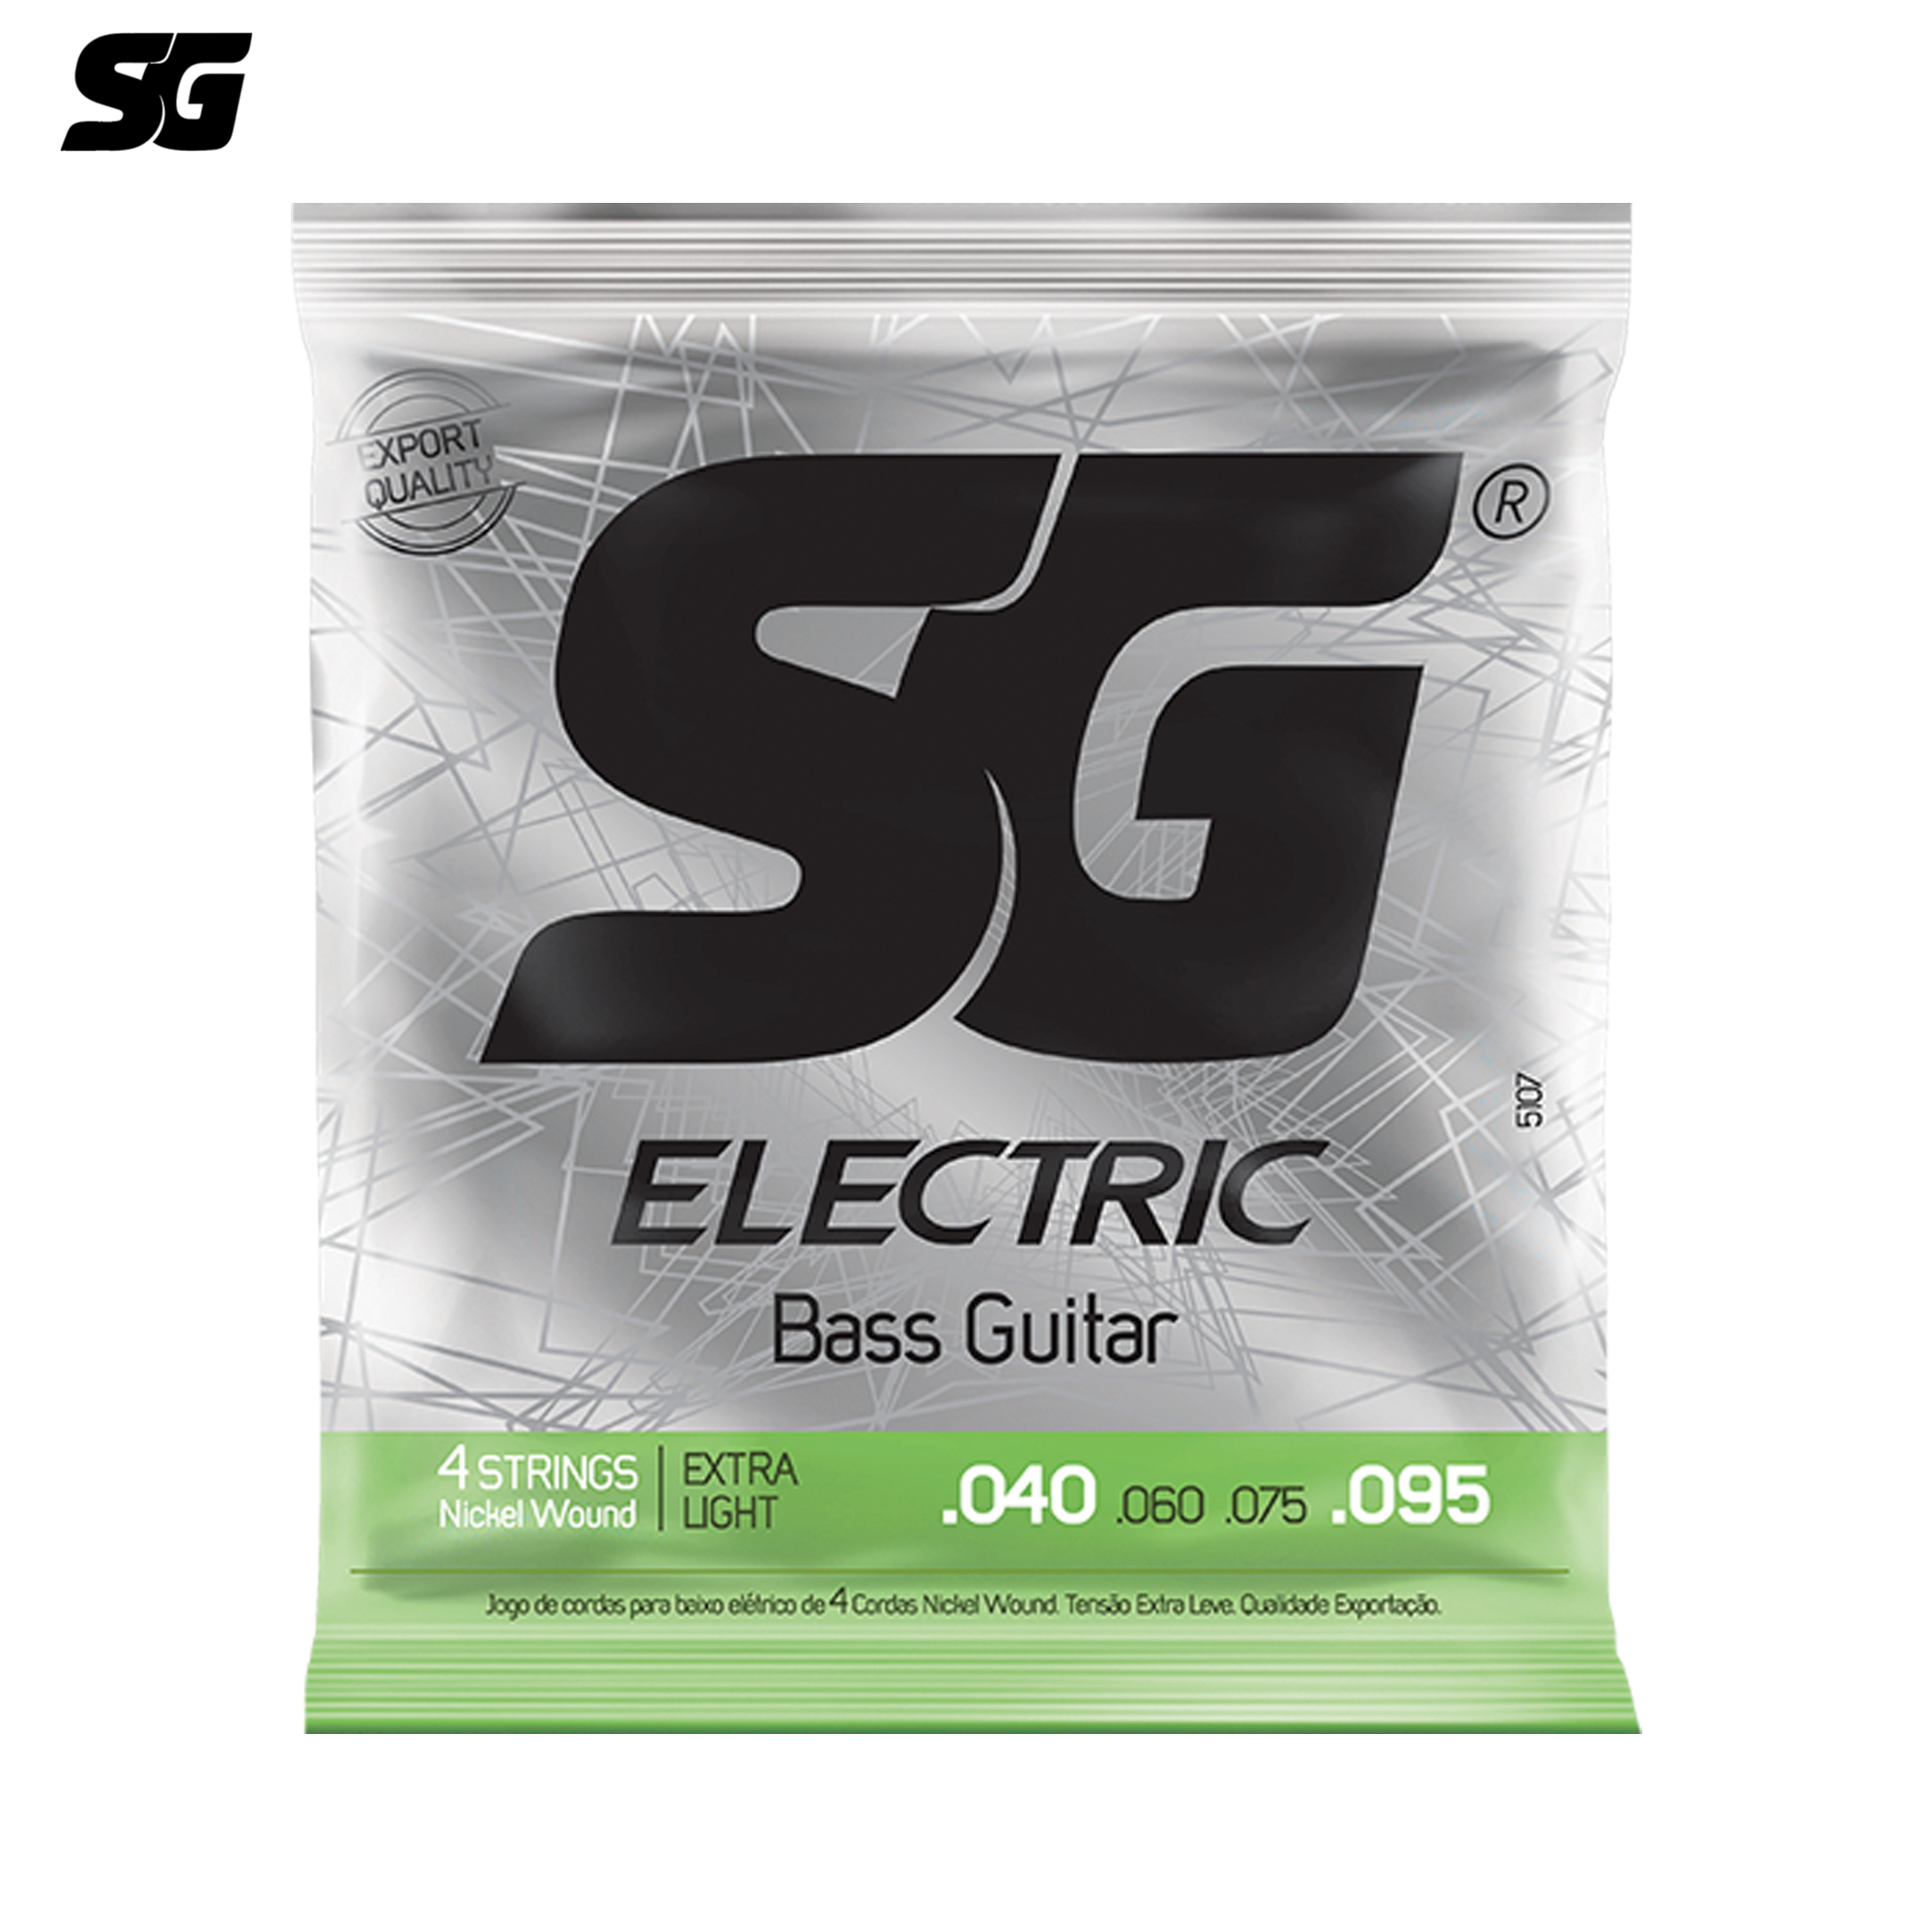 SG Brazil Electric Bass Strings 040-095 inch Tin-plated Steel Hexagonal Core Italy Technology USA Material Nickle Wound 5198EX rotosound rs66lc bass strings stainless steel